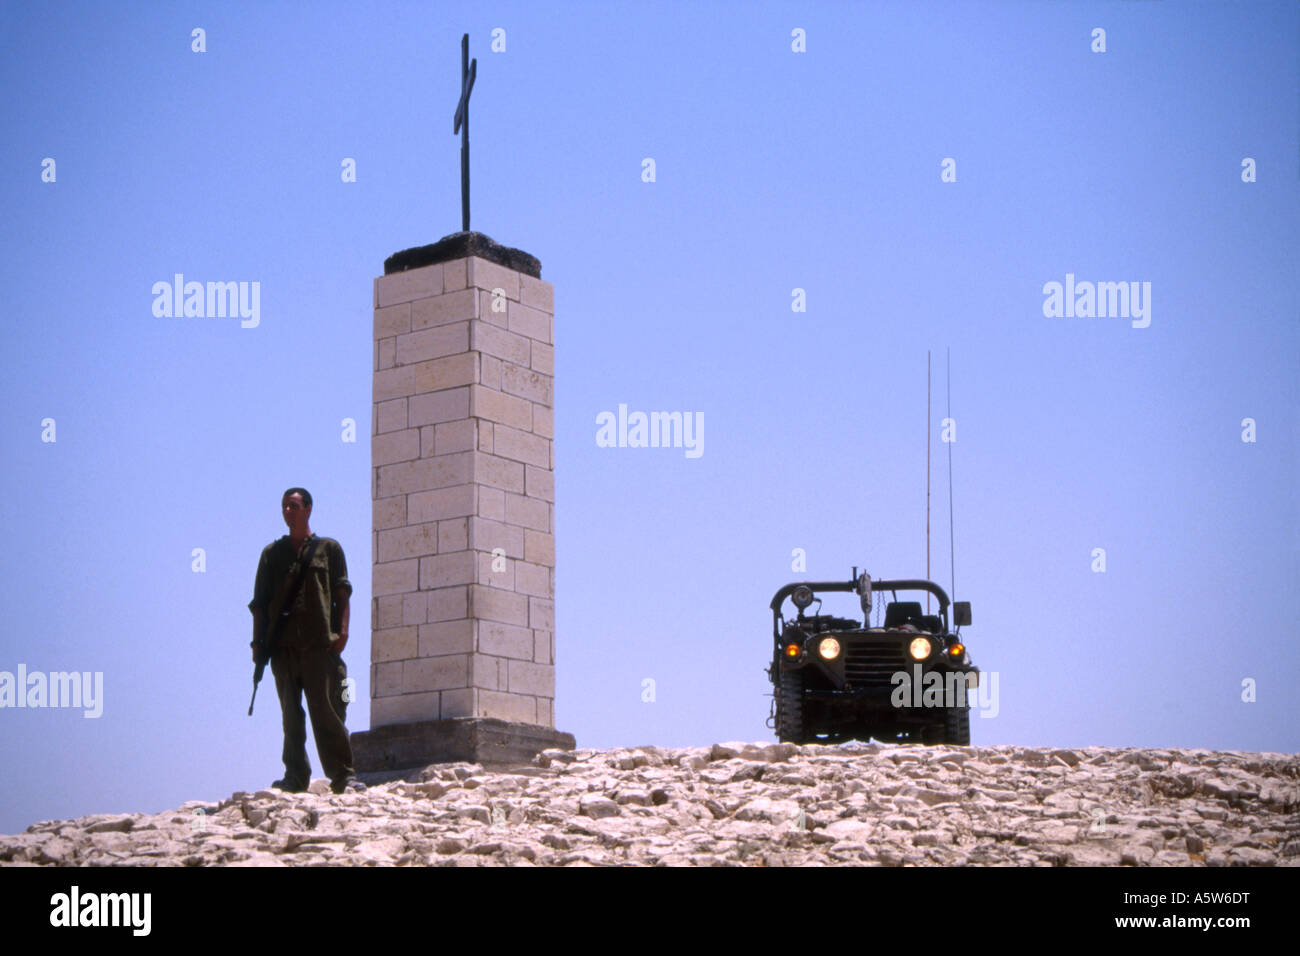 Soldier holding gun standing next to his jeep and stone column with crucifix on top under a blue sky,Israel. Stock Photo